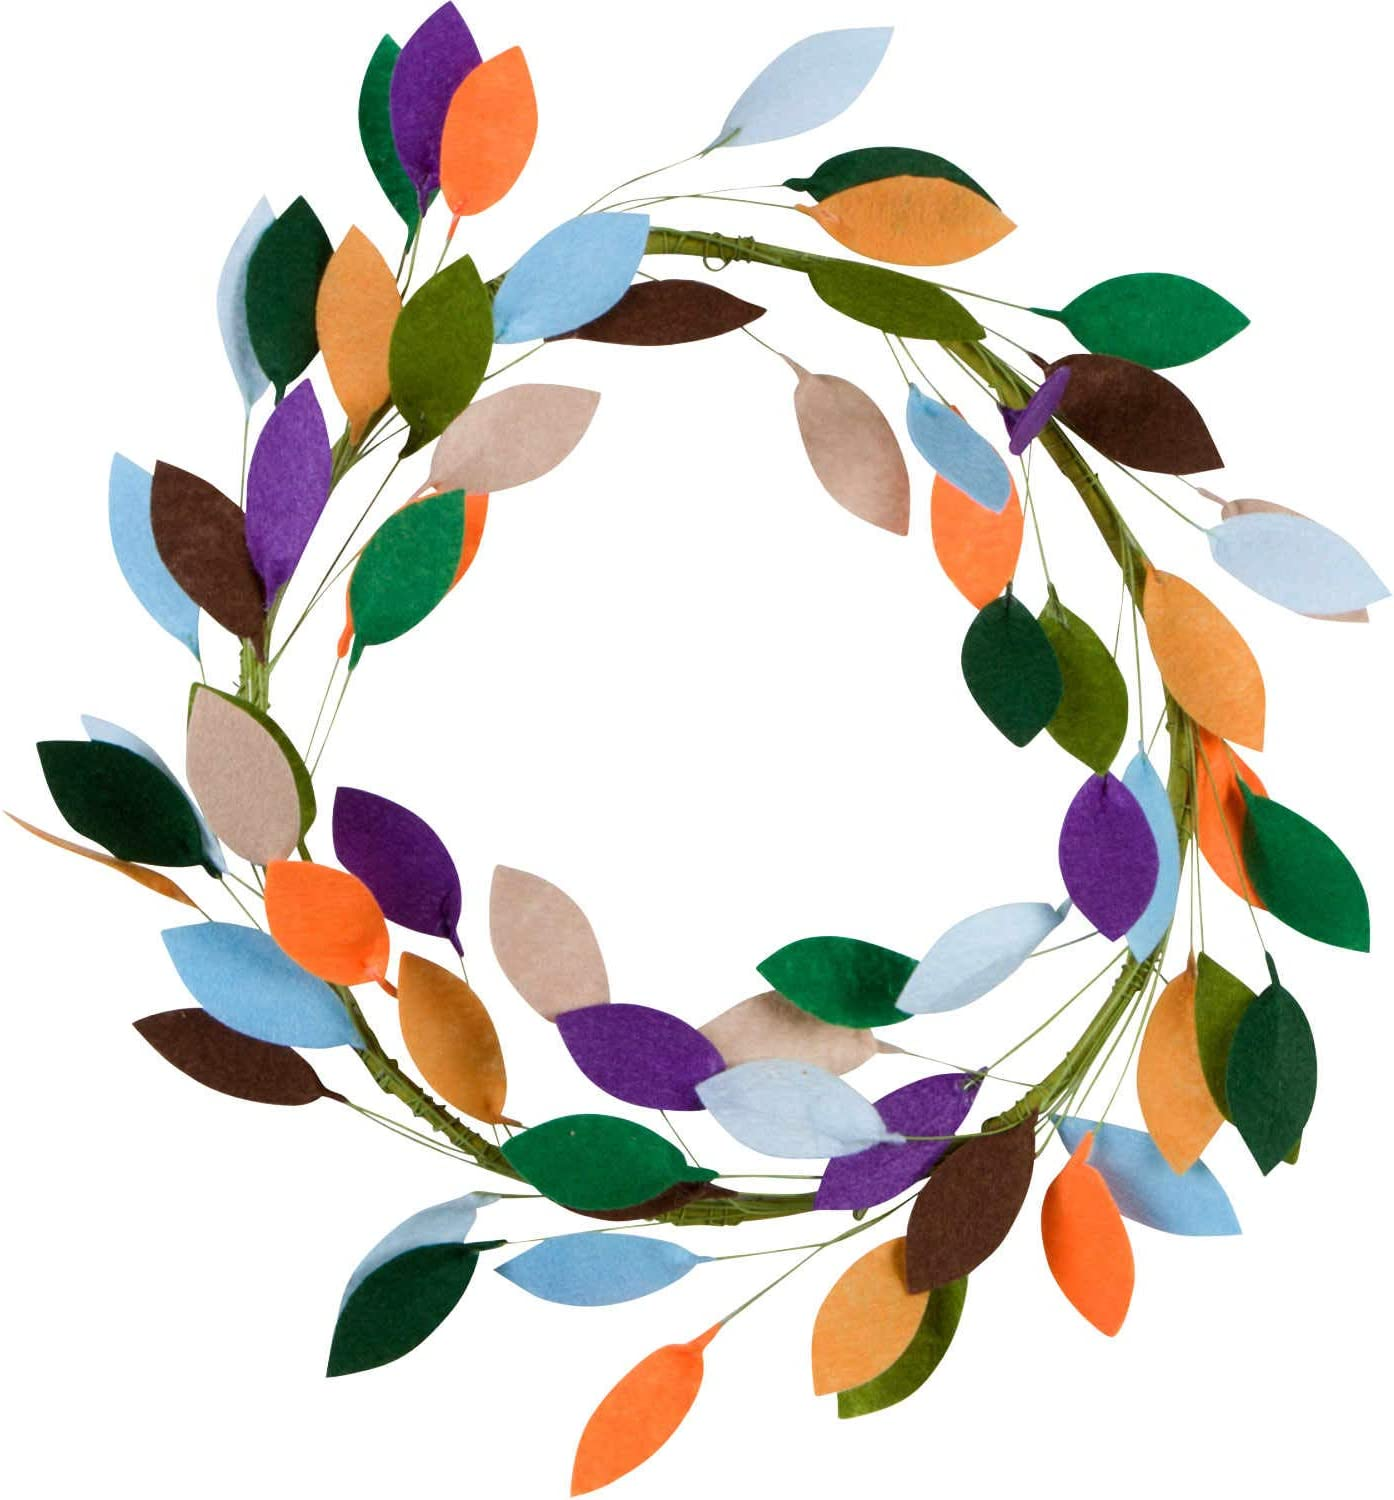 Orchid & Ivy 16-Inch Bright Autumn Colors Felt Leaf Rustic Front Door Fall or Christmas Wreath - Modern Farmhouse Holiday Home Decor for Indoor or Outdoor Walls and Windows